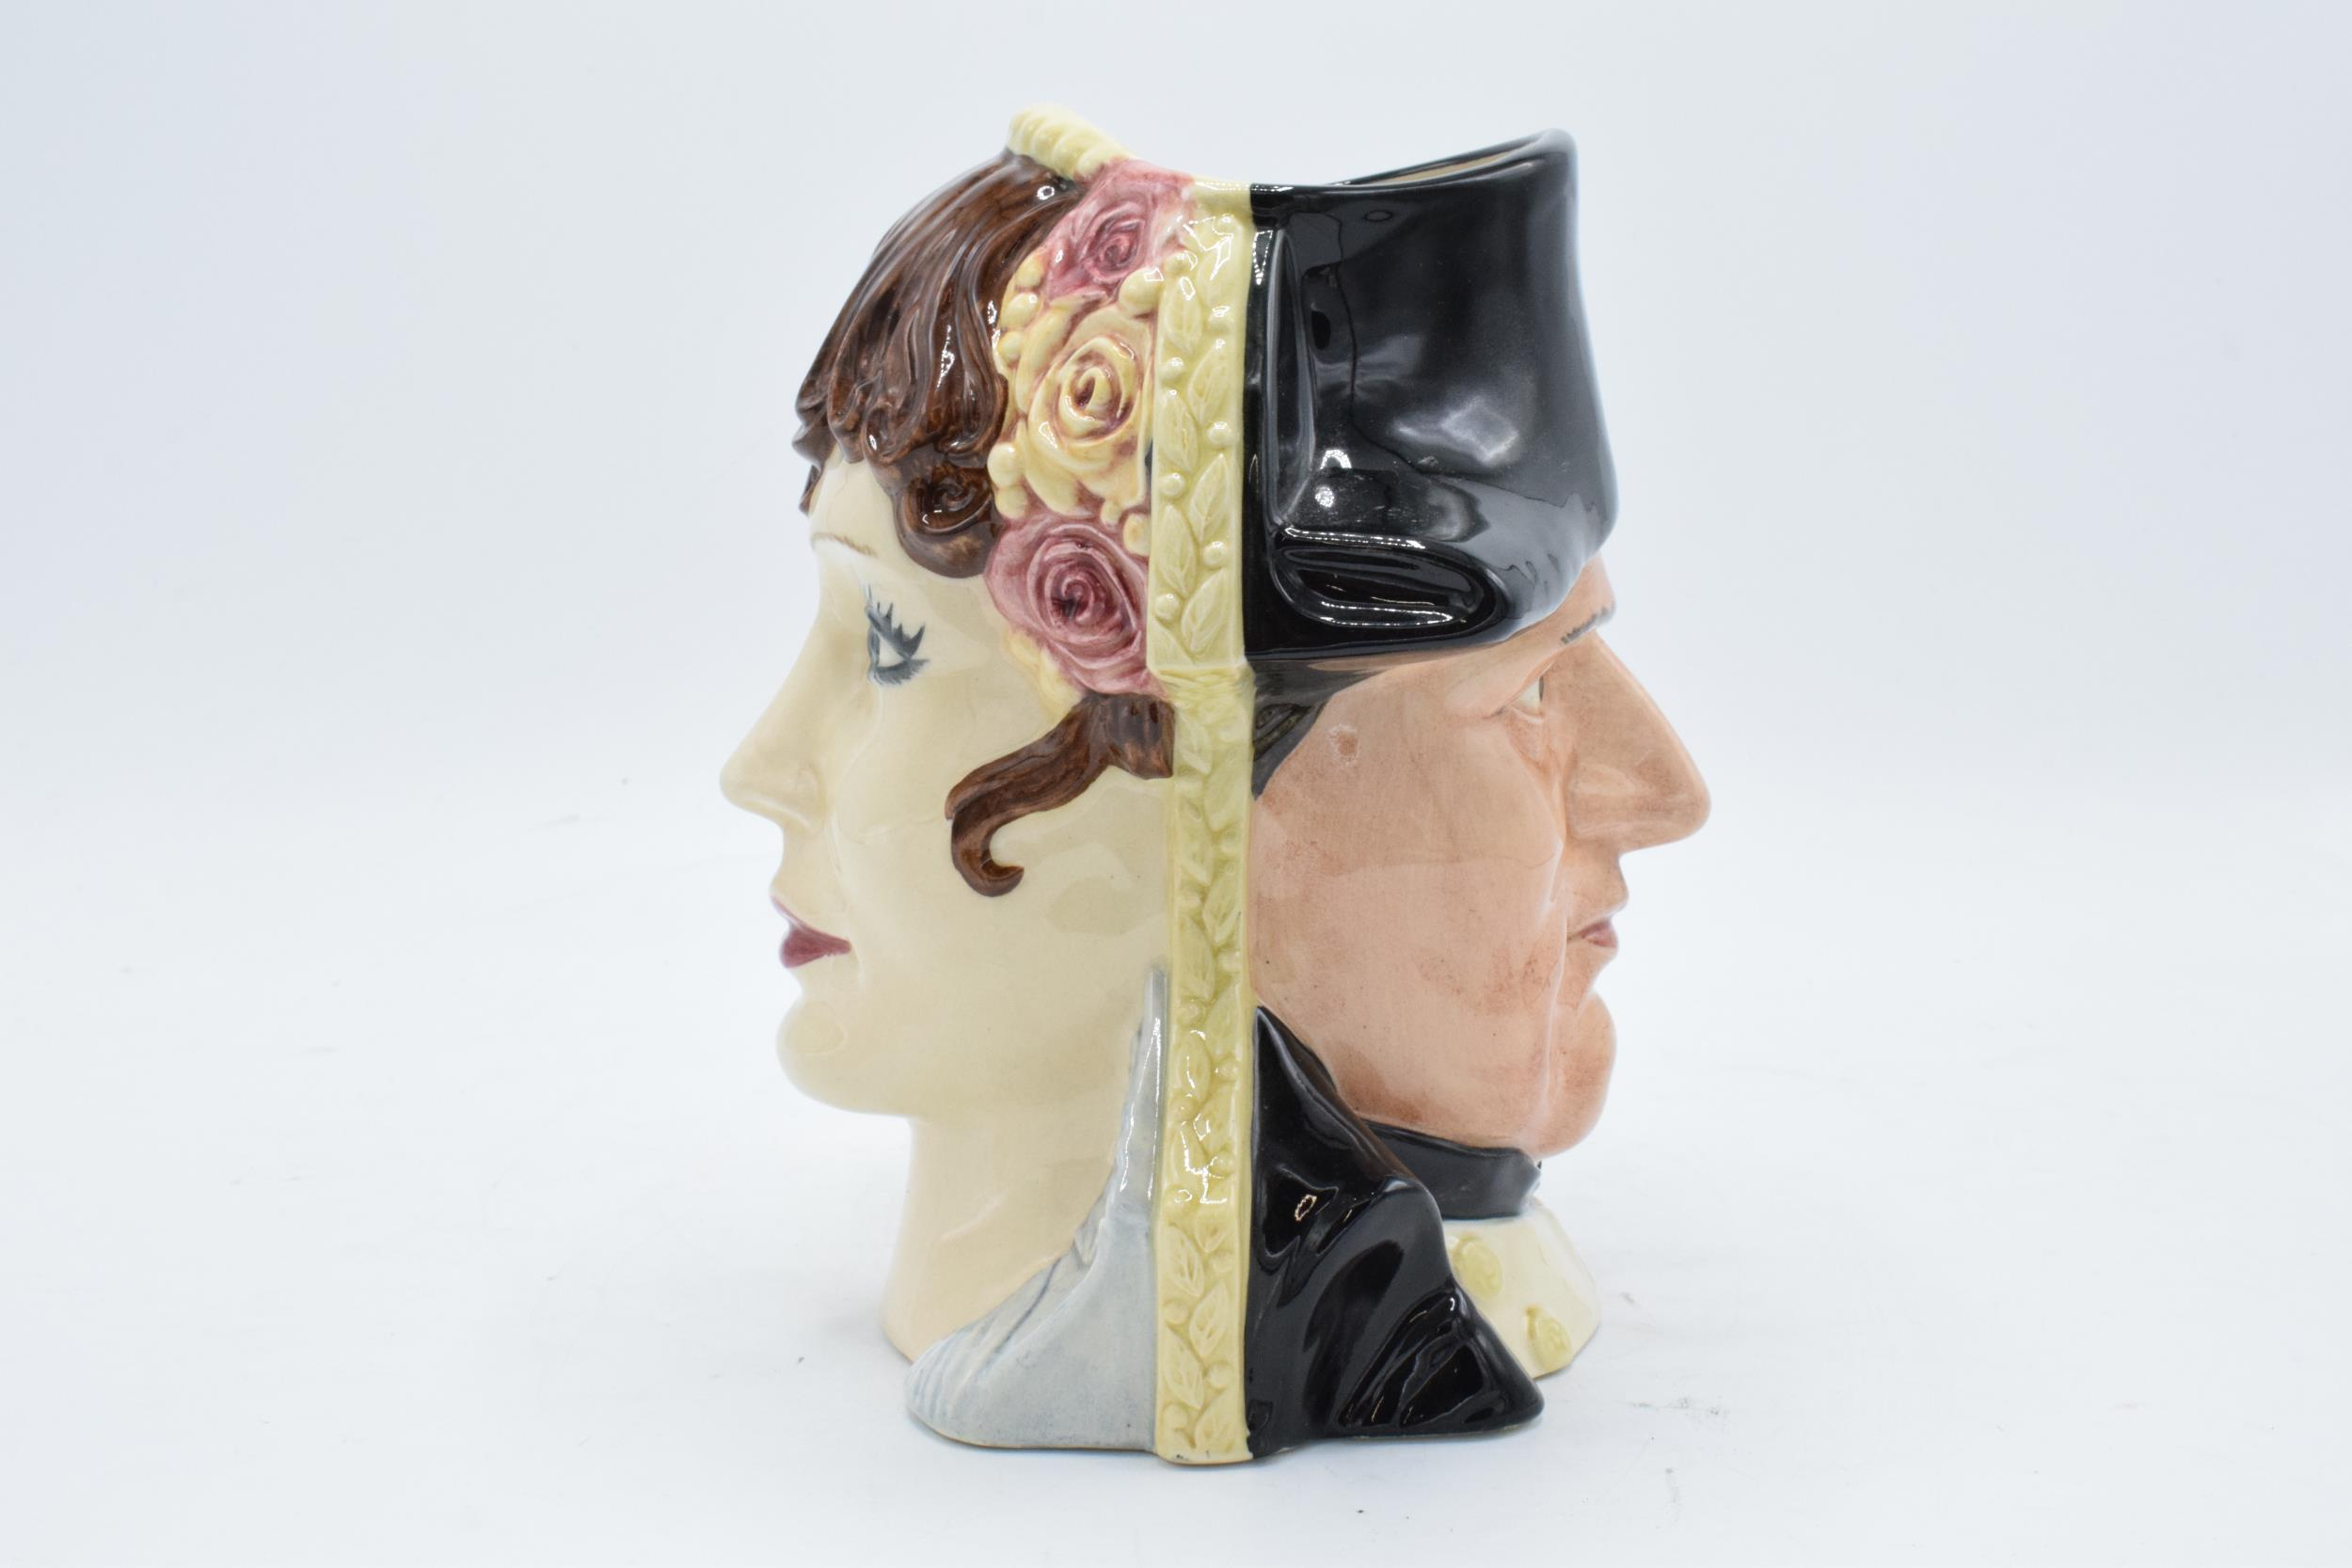 Large Royal Doulton double-sided character jug of Napoleon and Josephine D6750 4736/9500. In good